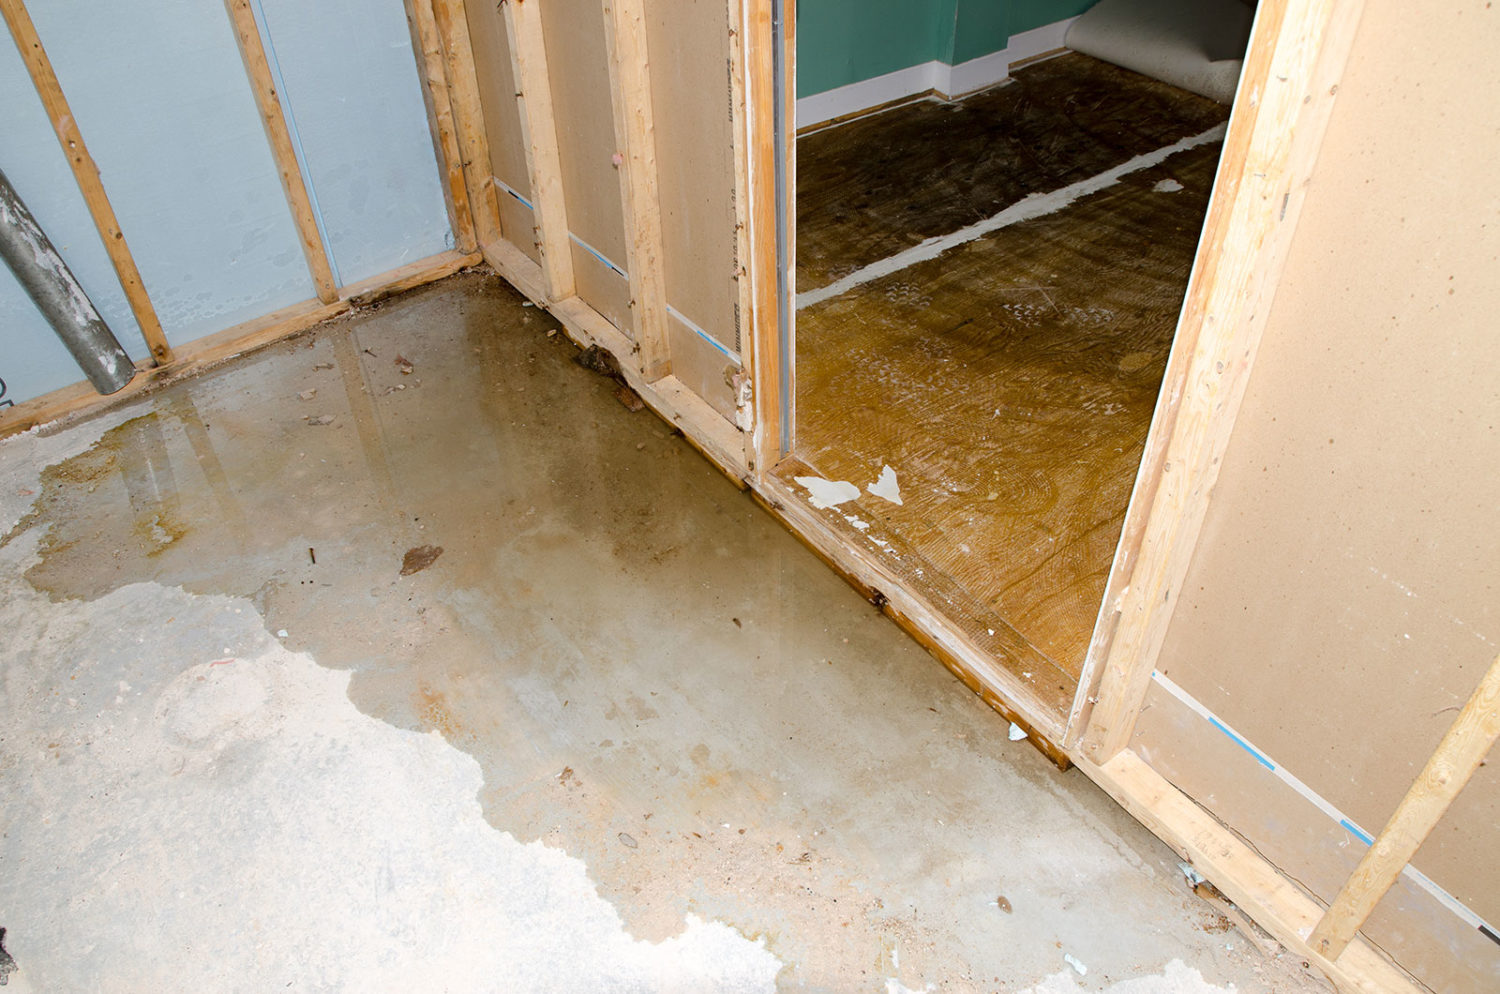 Water pooling on interior floor causing damage